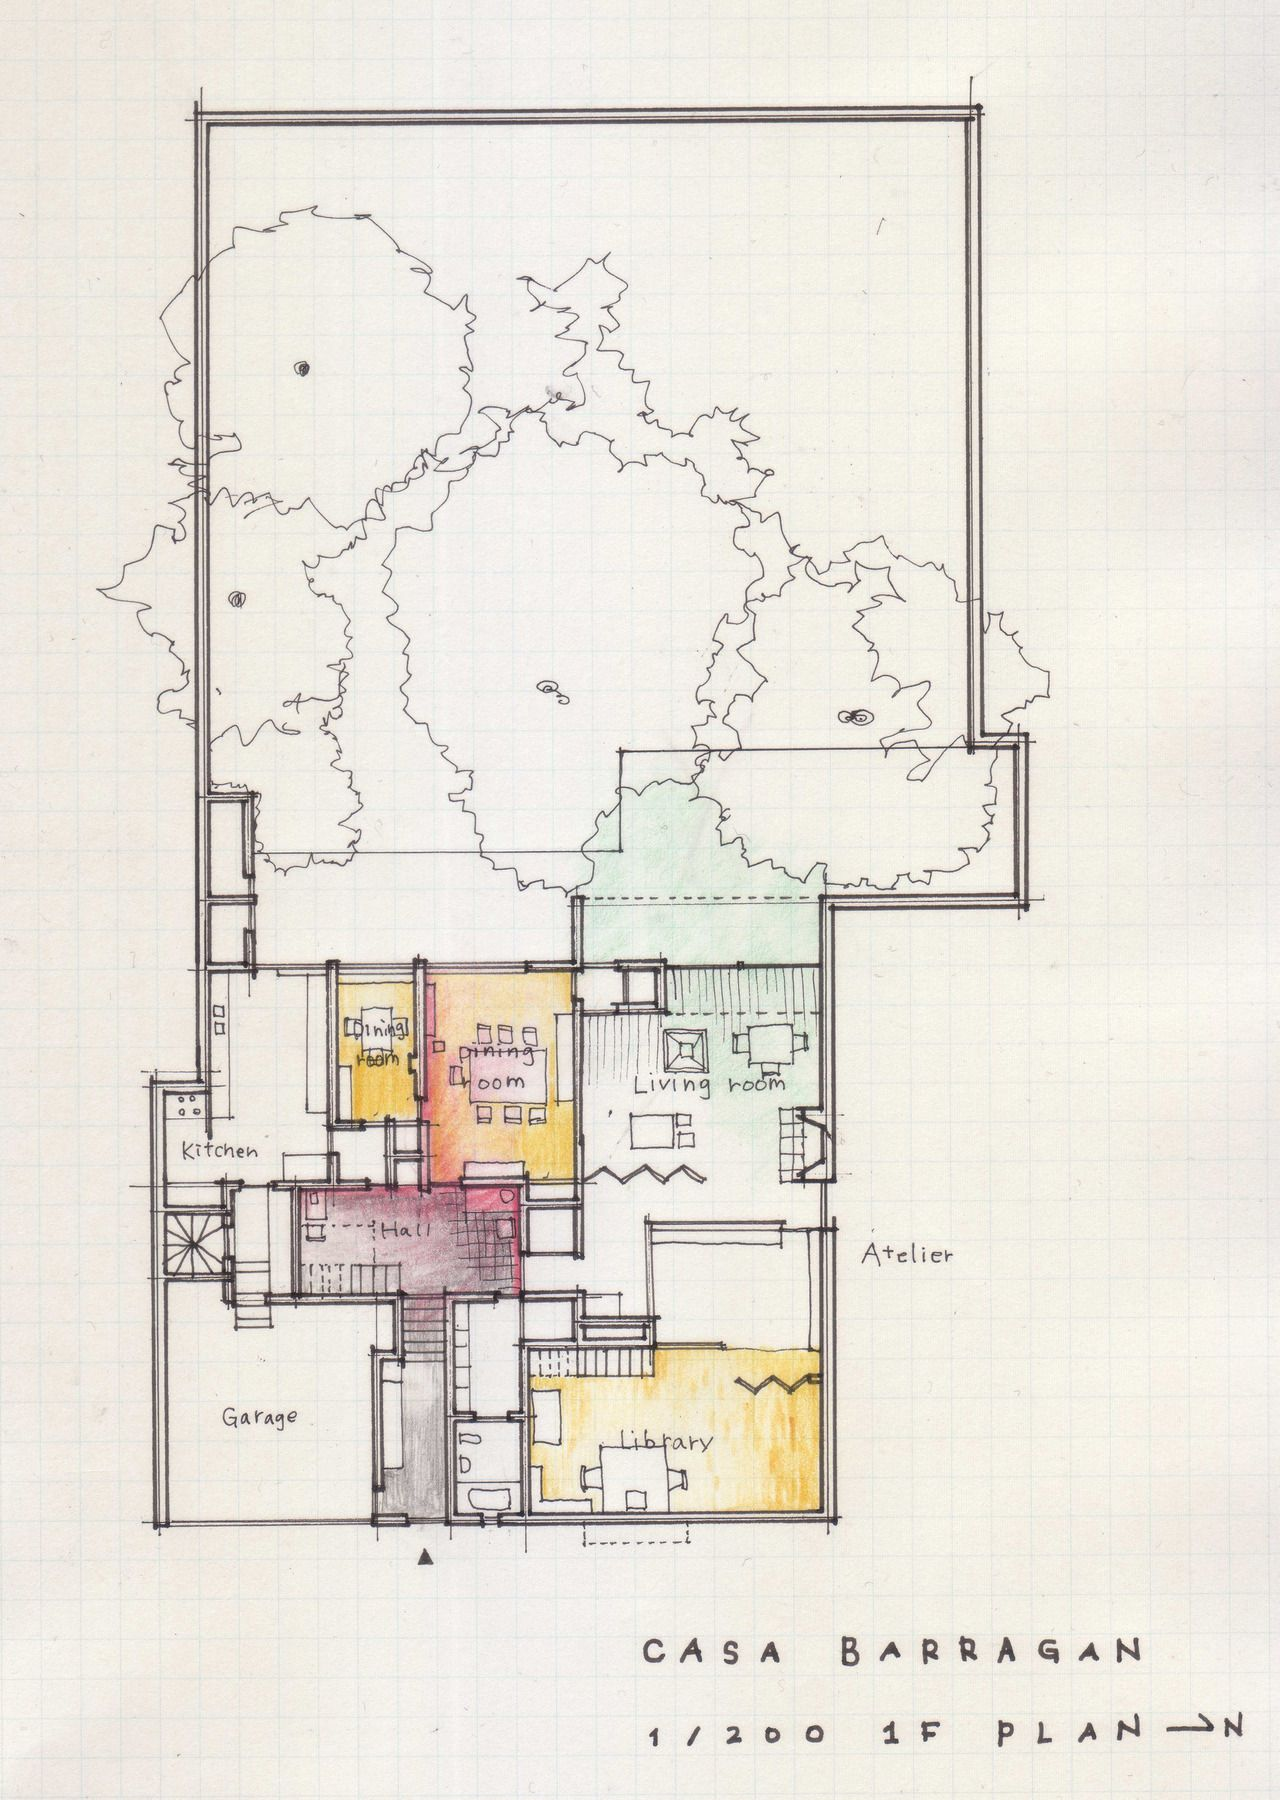 A Floor Plan A Day Keeps The Doctor Away Luis Barragan Casa Barragan 1948 Taubaya Luis Barragan House Urban Design Architecture Architecture Plan